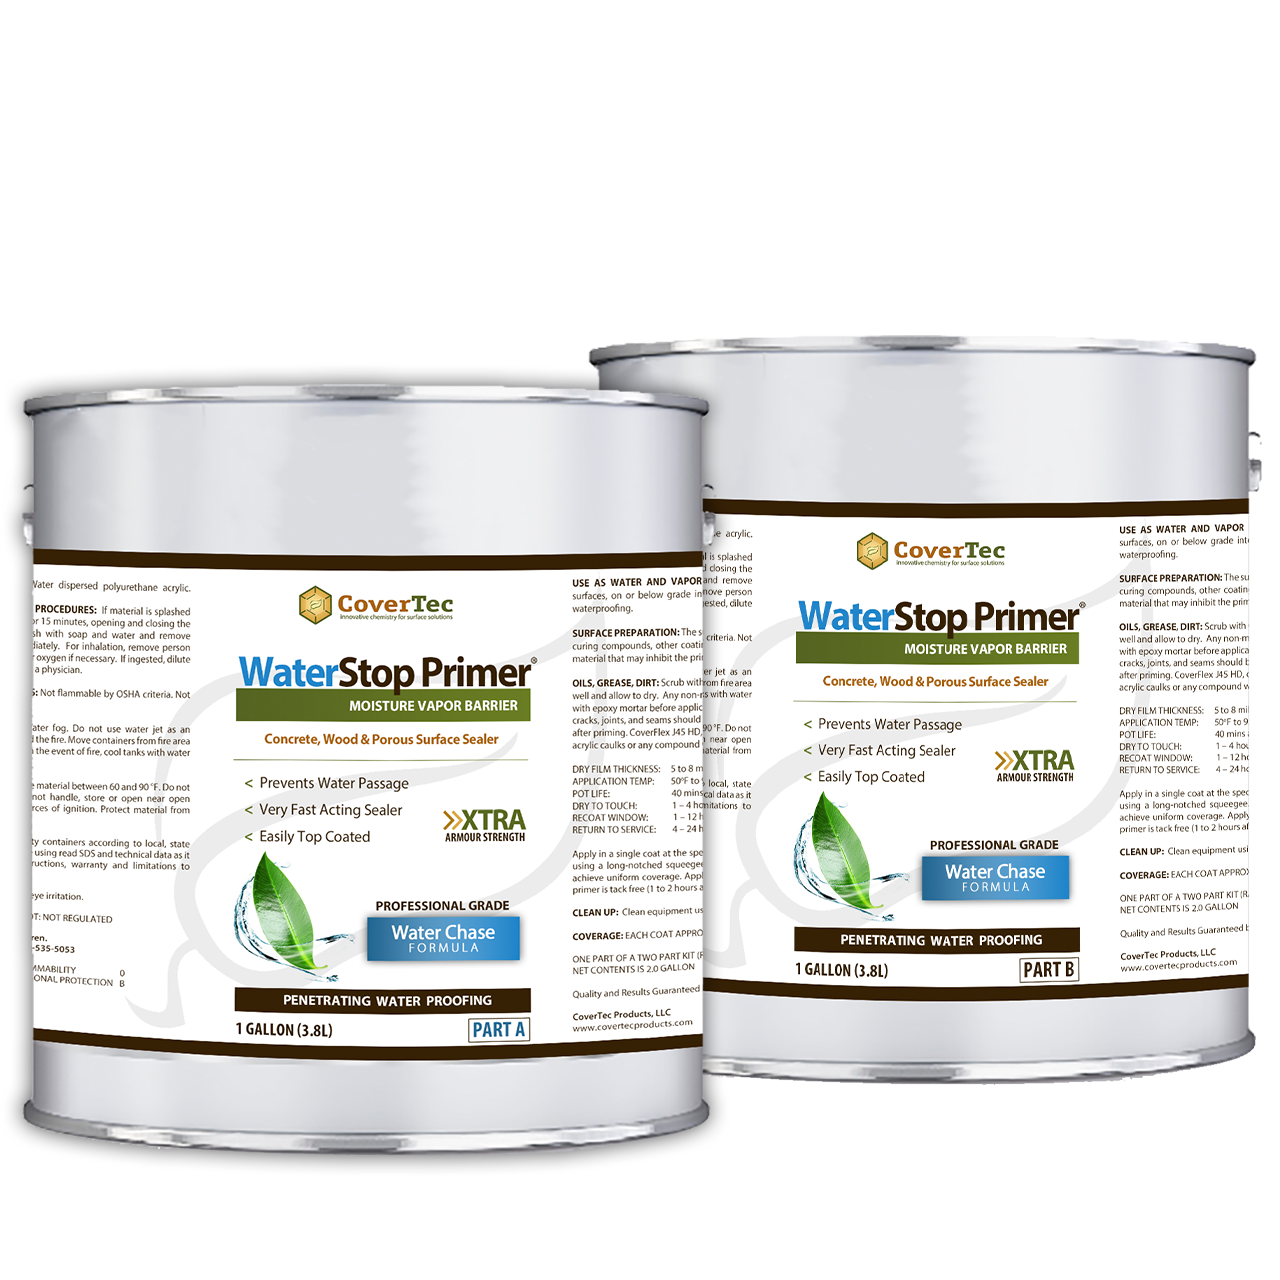 CoverShield WaterStop Primer – An Exterior / Interior Waterproofing Primer For Concrete, Masonry & Wood